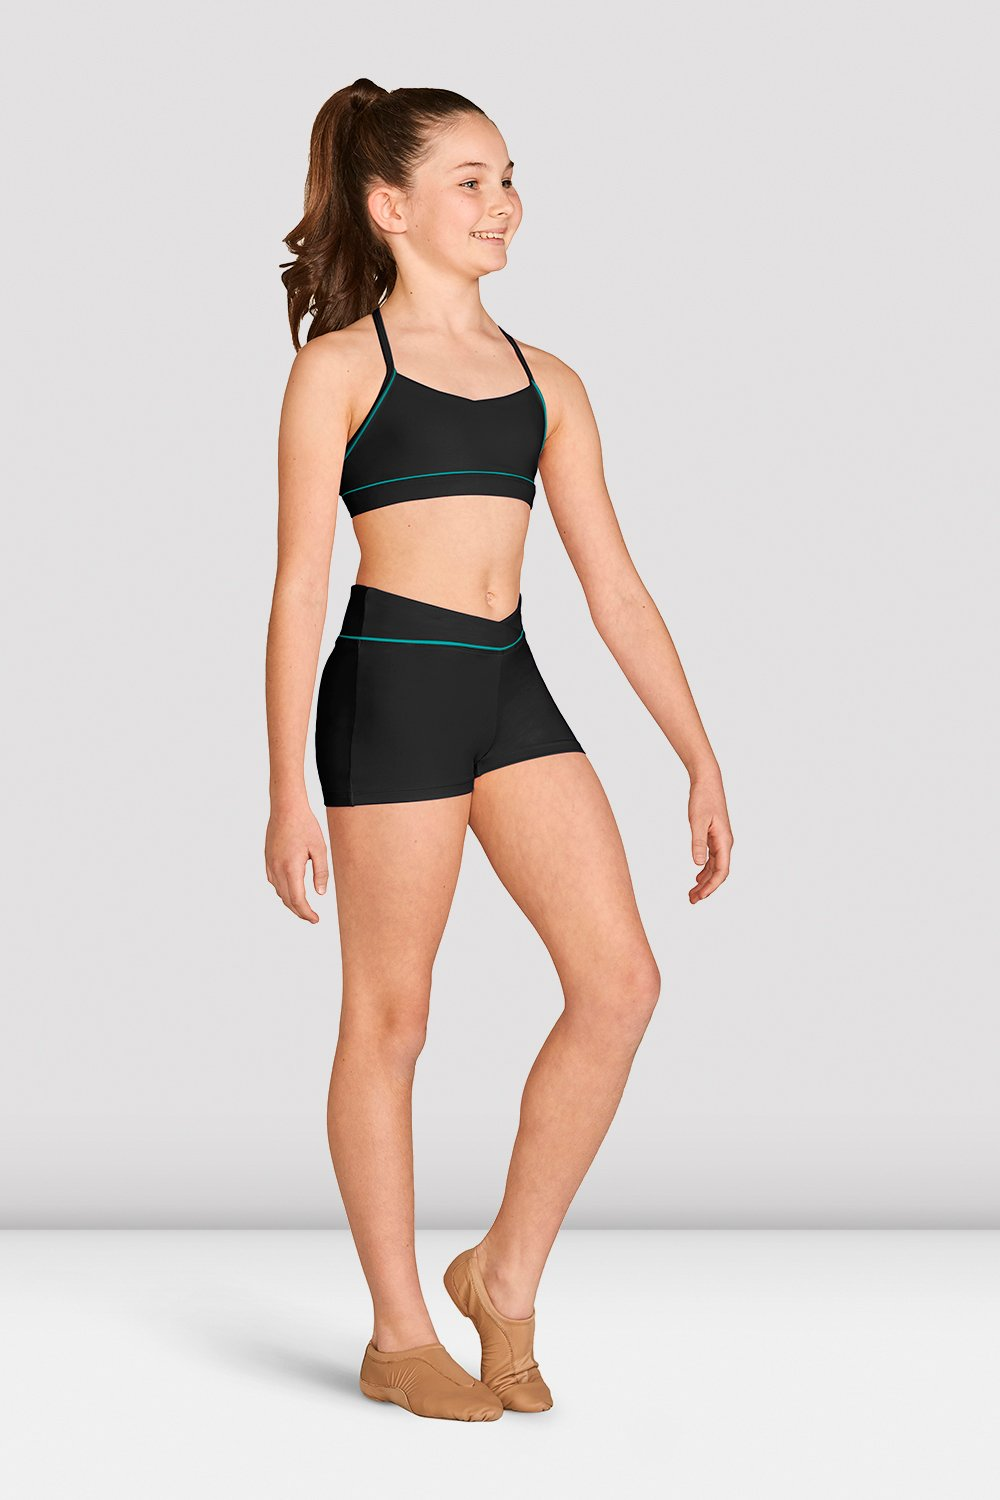 Girls Contrast Piping Short - BLOCH US